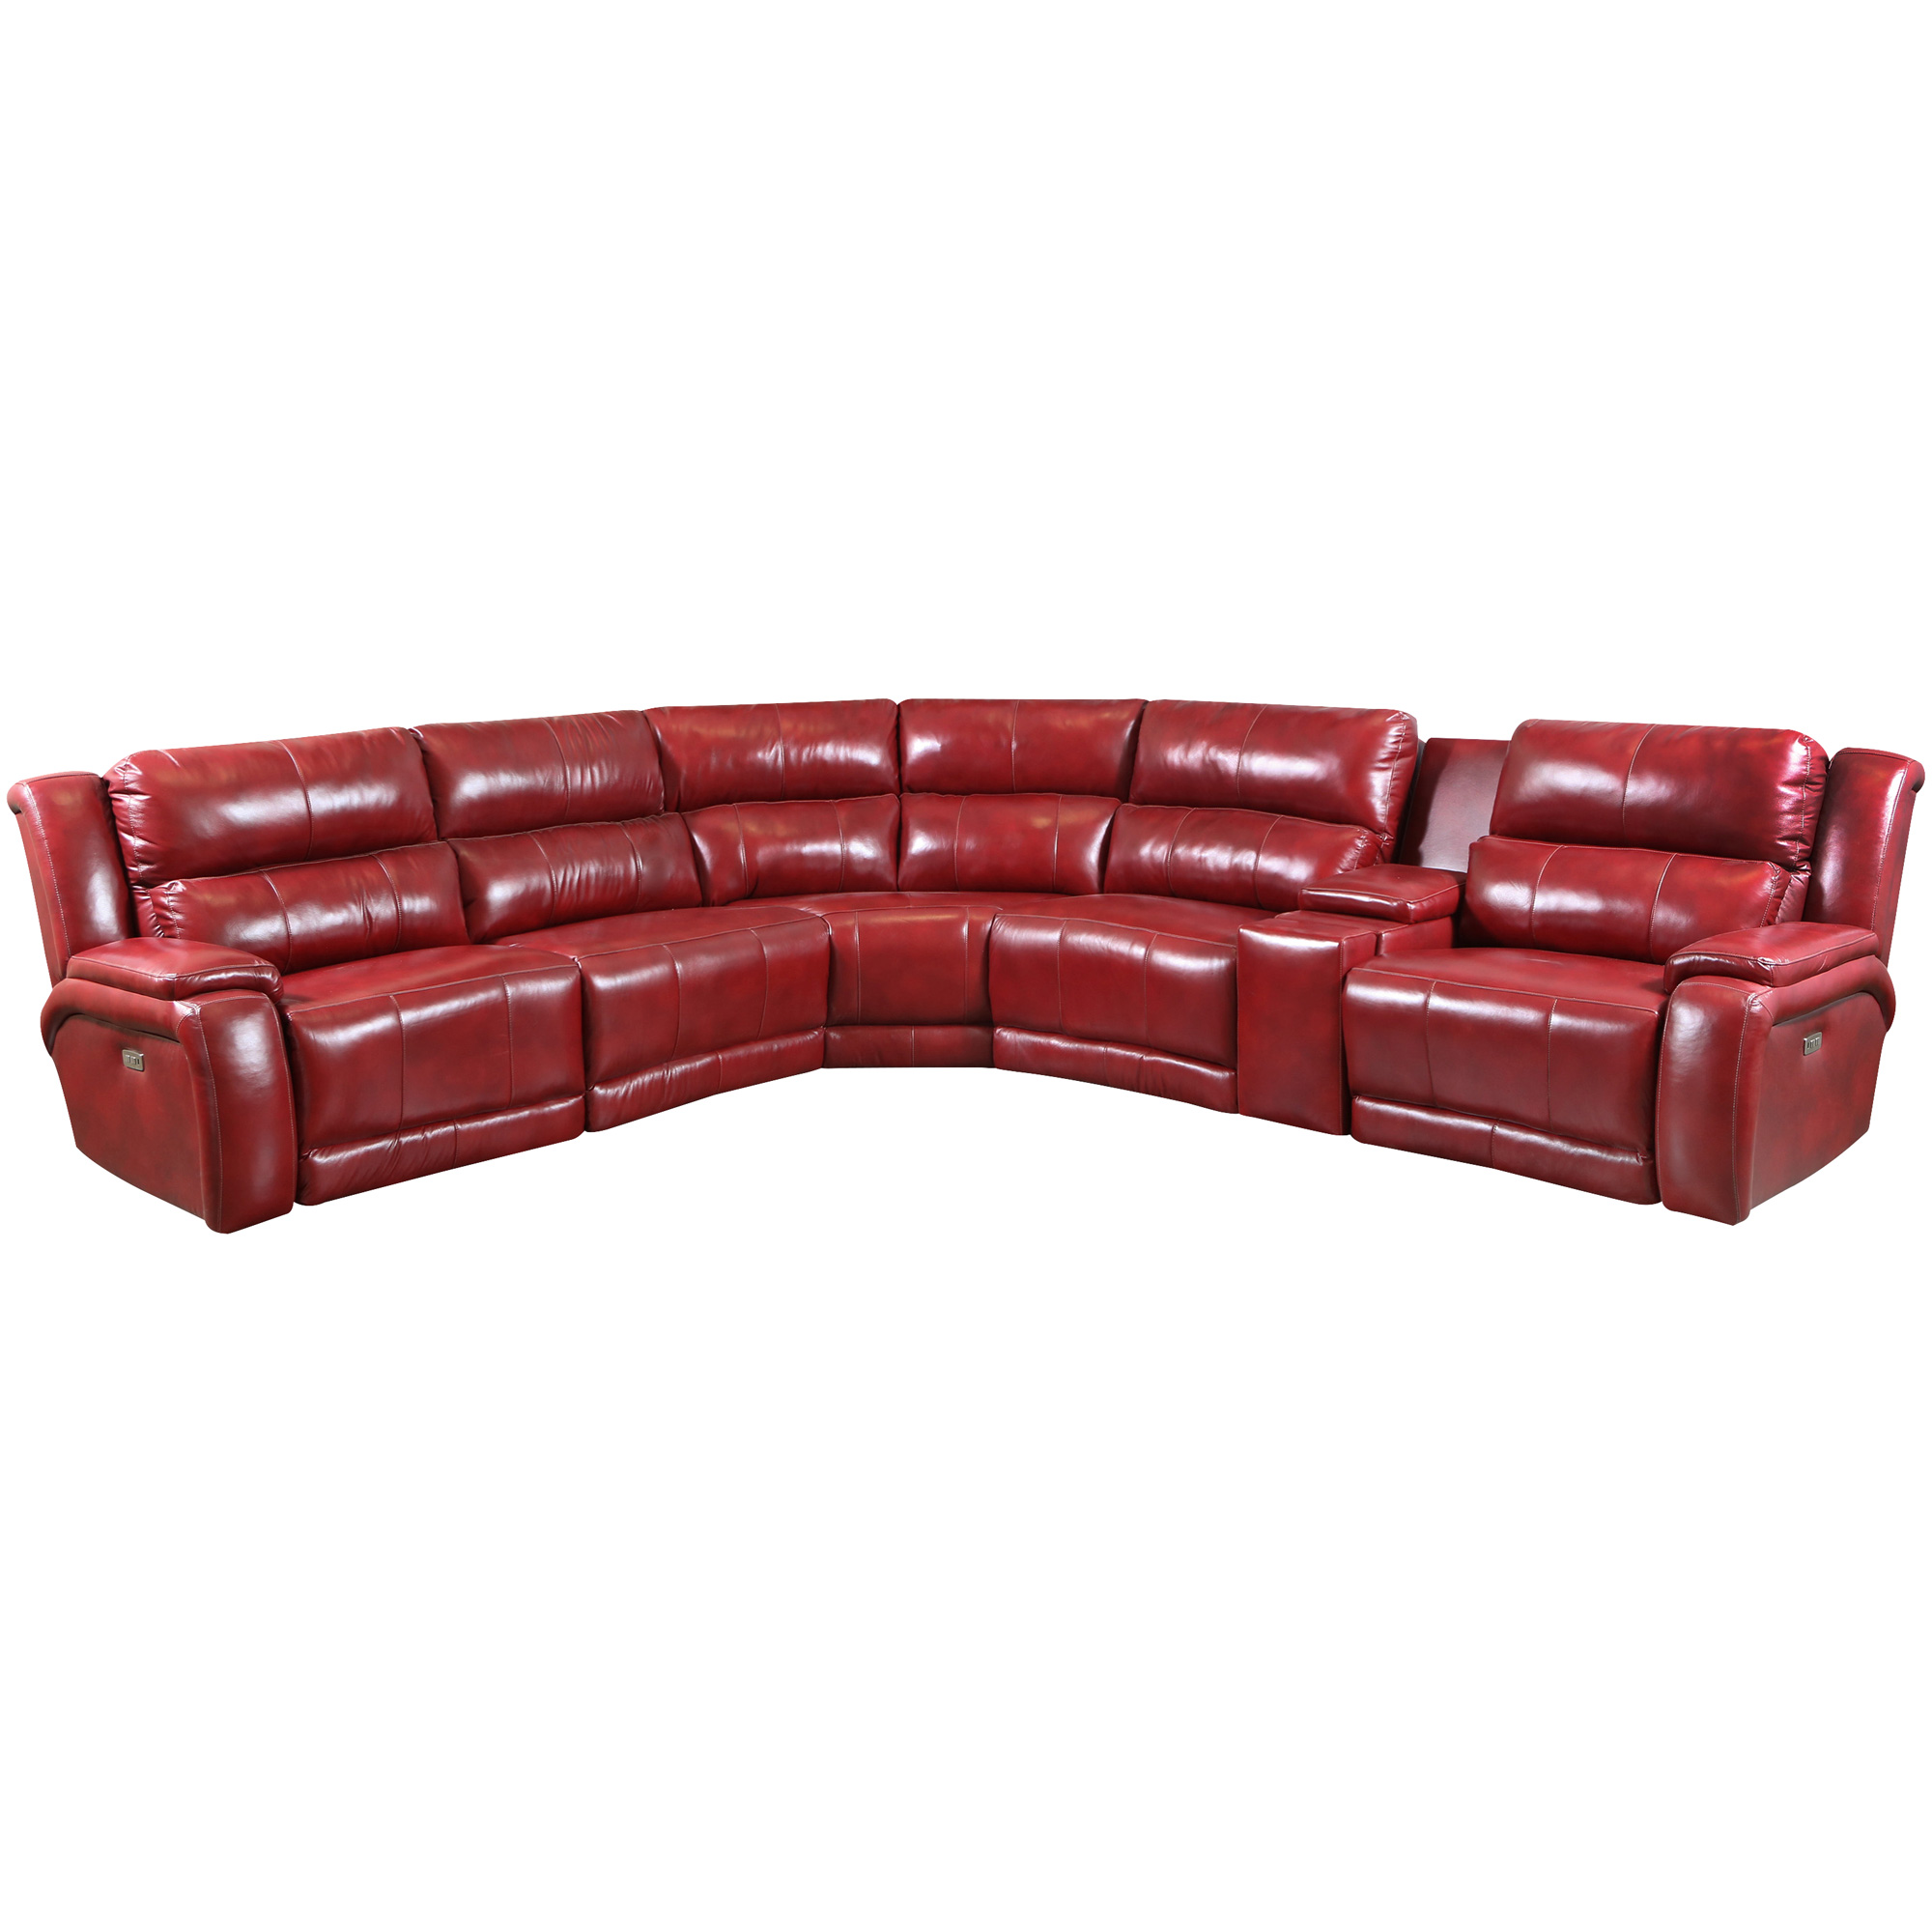 Southern Motion | Marquis Leather Marsala 6 Piece Power+ Next Level Recliner Sectional Sofa